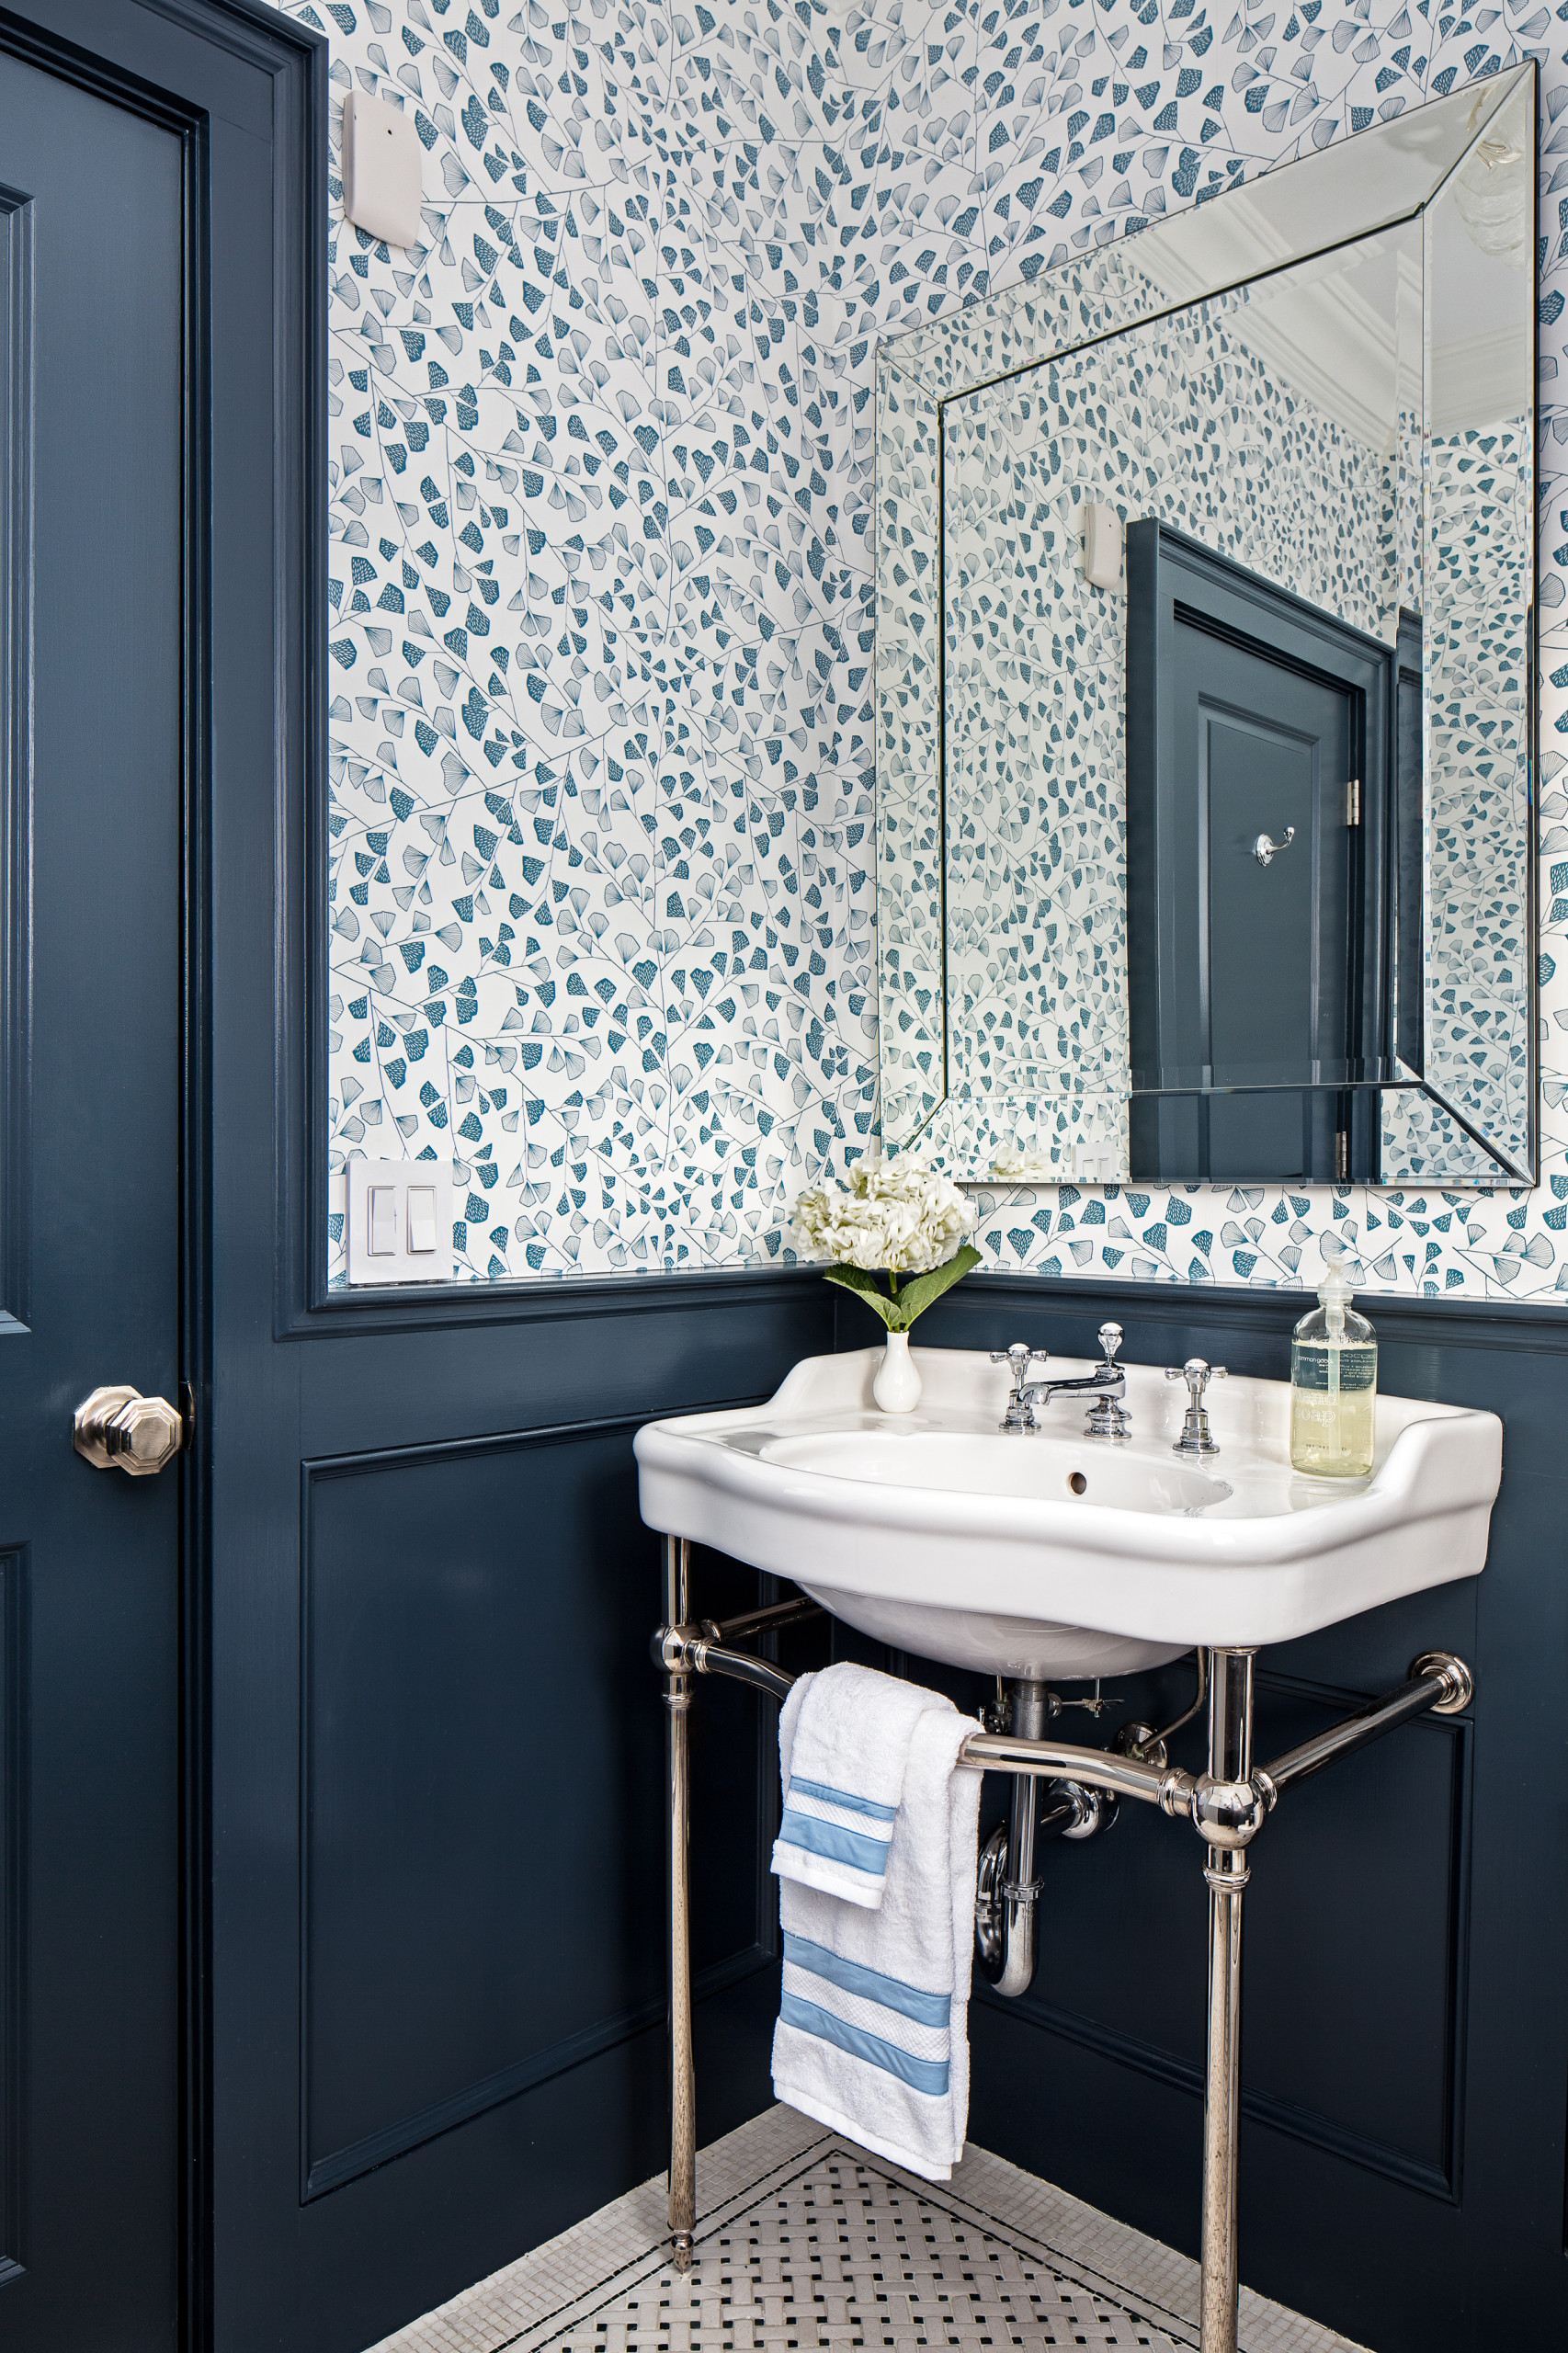 75 Beautiful Wainscoting Powder Room Pictures Ideas February 2021 Houzz